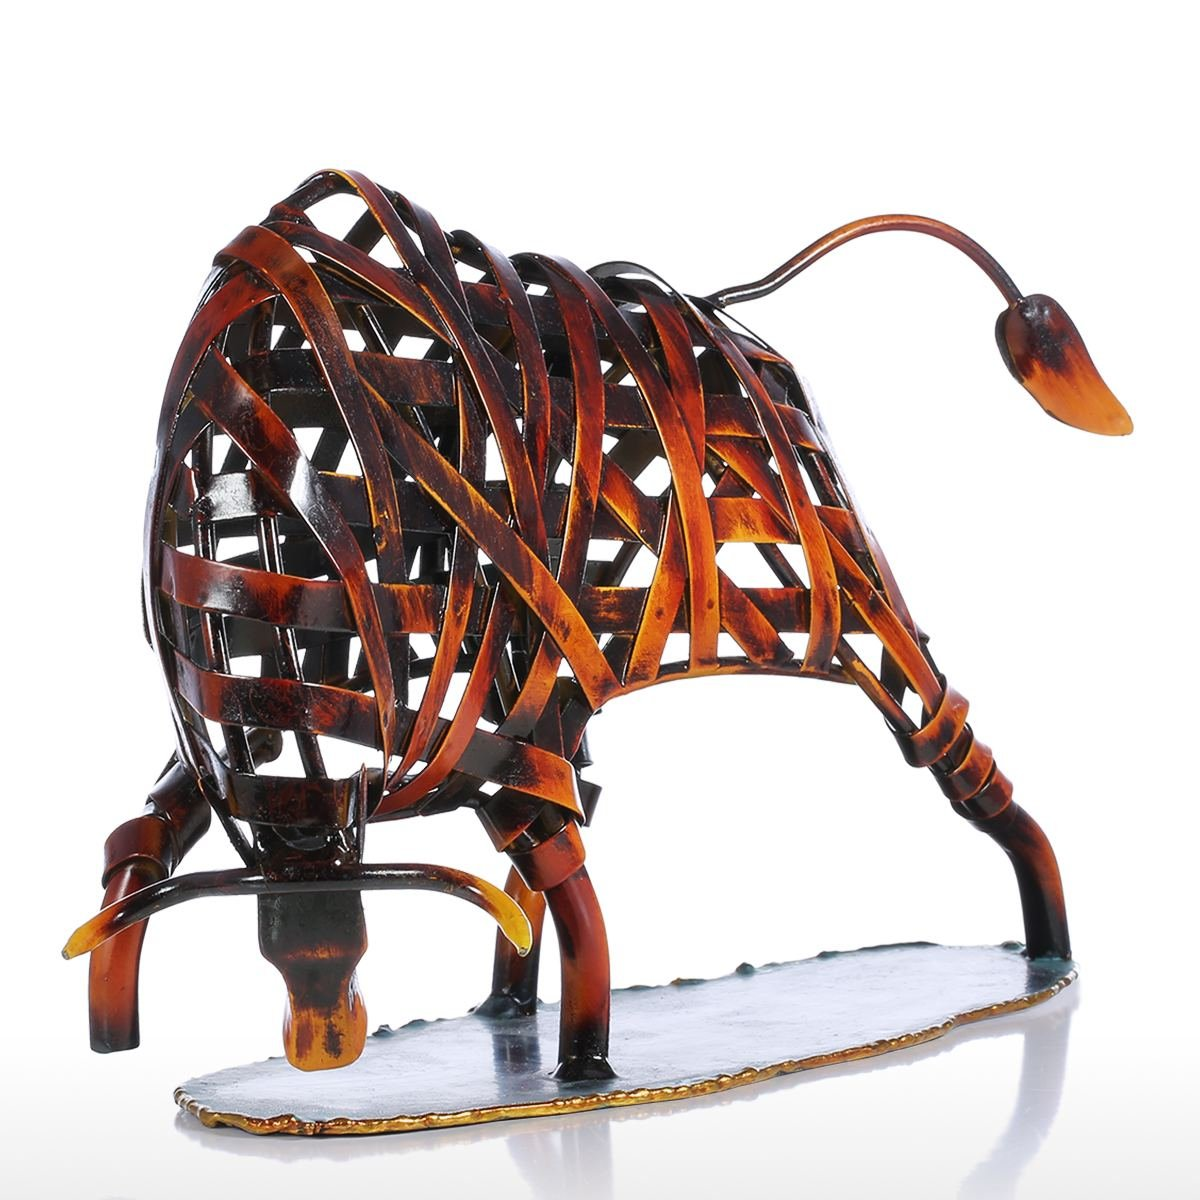 Tooarts Metal Weaving Cattle Red Iron Sculpture Abstract